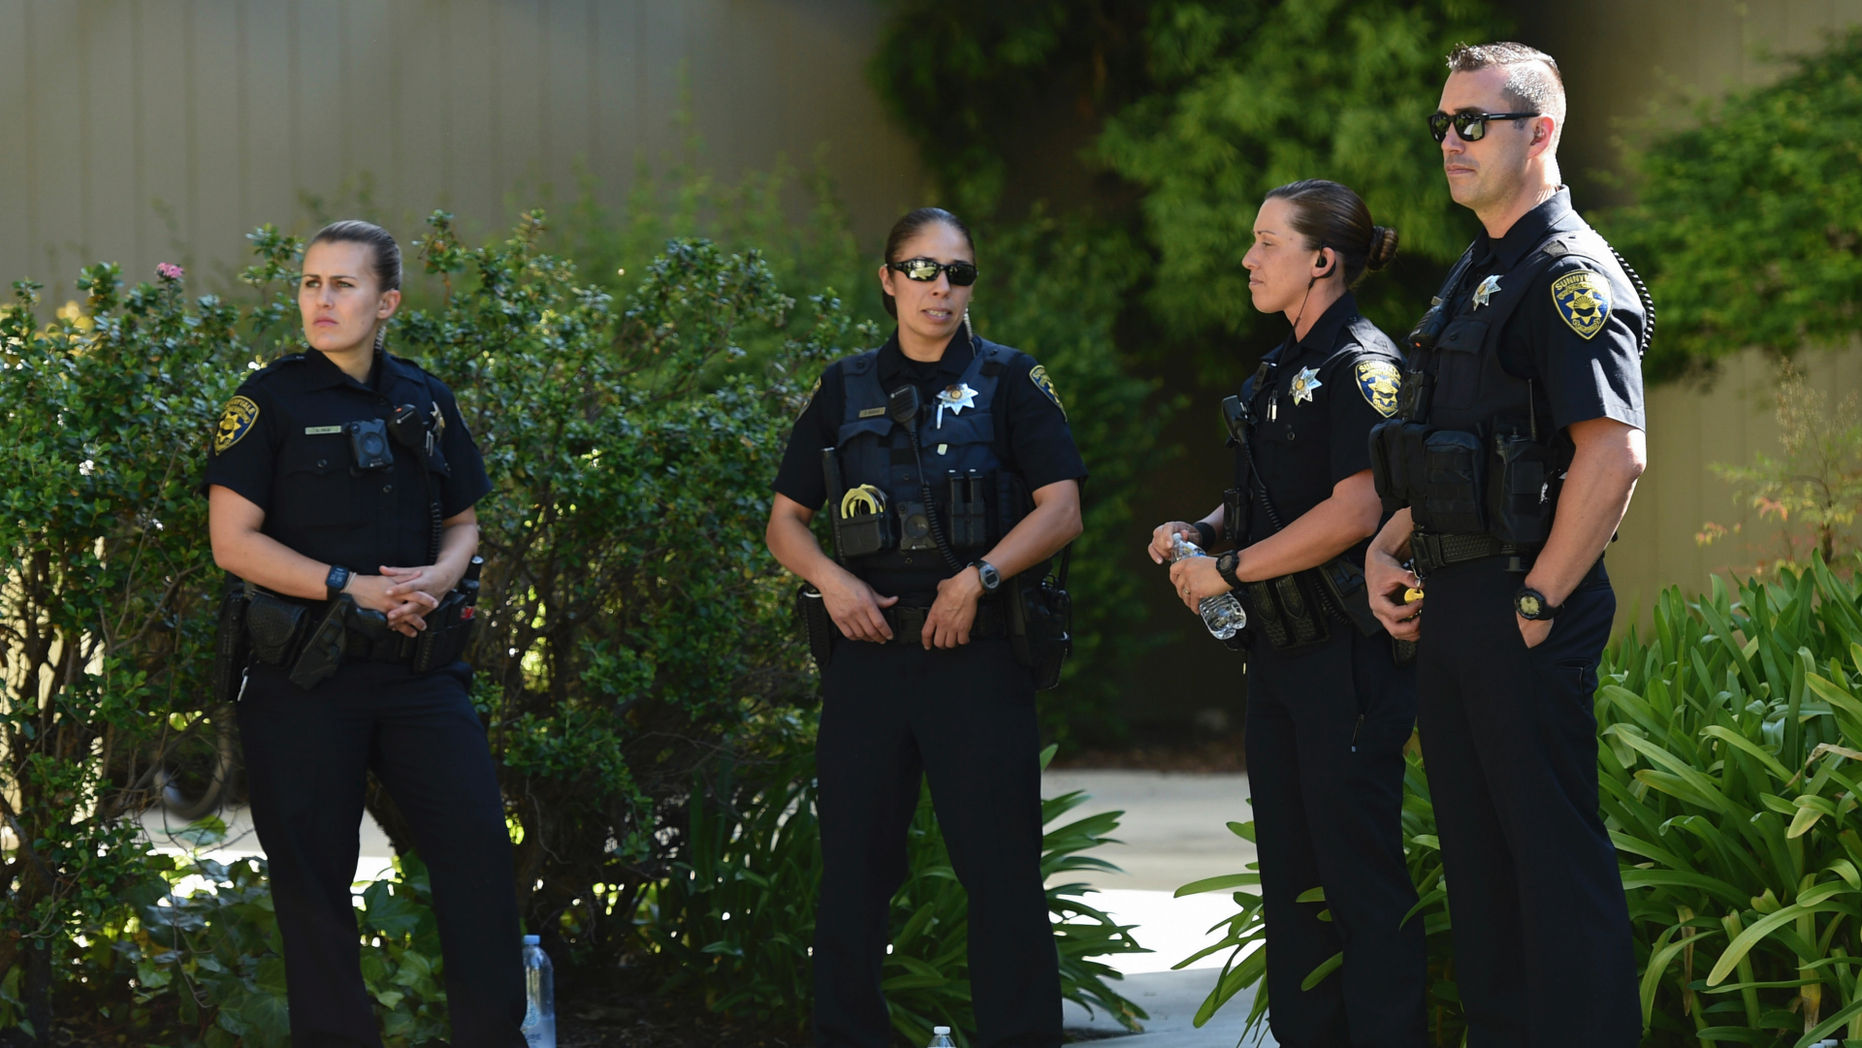 Police stand outside an apartment complex believed to be associated with a car crash suspect in Sunnyvale, Calif., on Wednesday, April 24, 2019. Investigators are working to determine the cause of the crash in Northern California that injured several pedestrians on Tuesday evening. Authorities say the driver of the car was taken into custody after he appeared to deliberately plow into the group. (AP Photo/Cody Glenn)